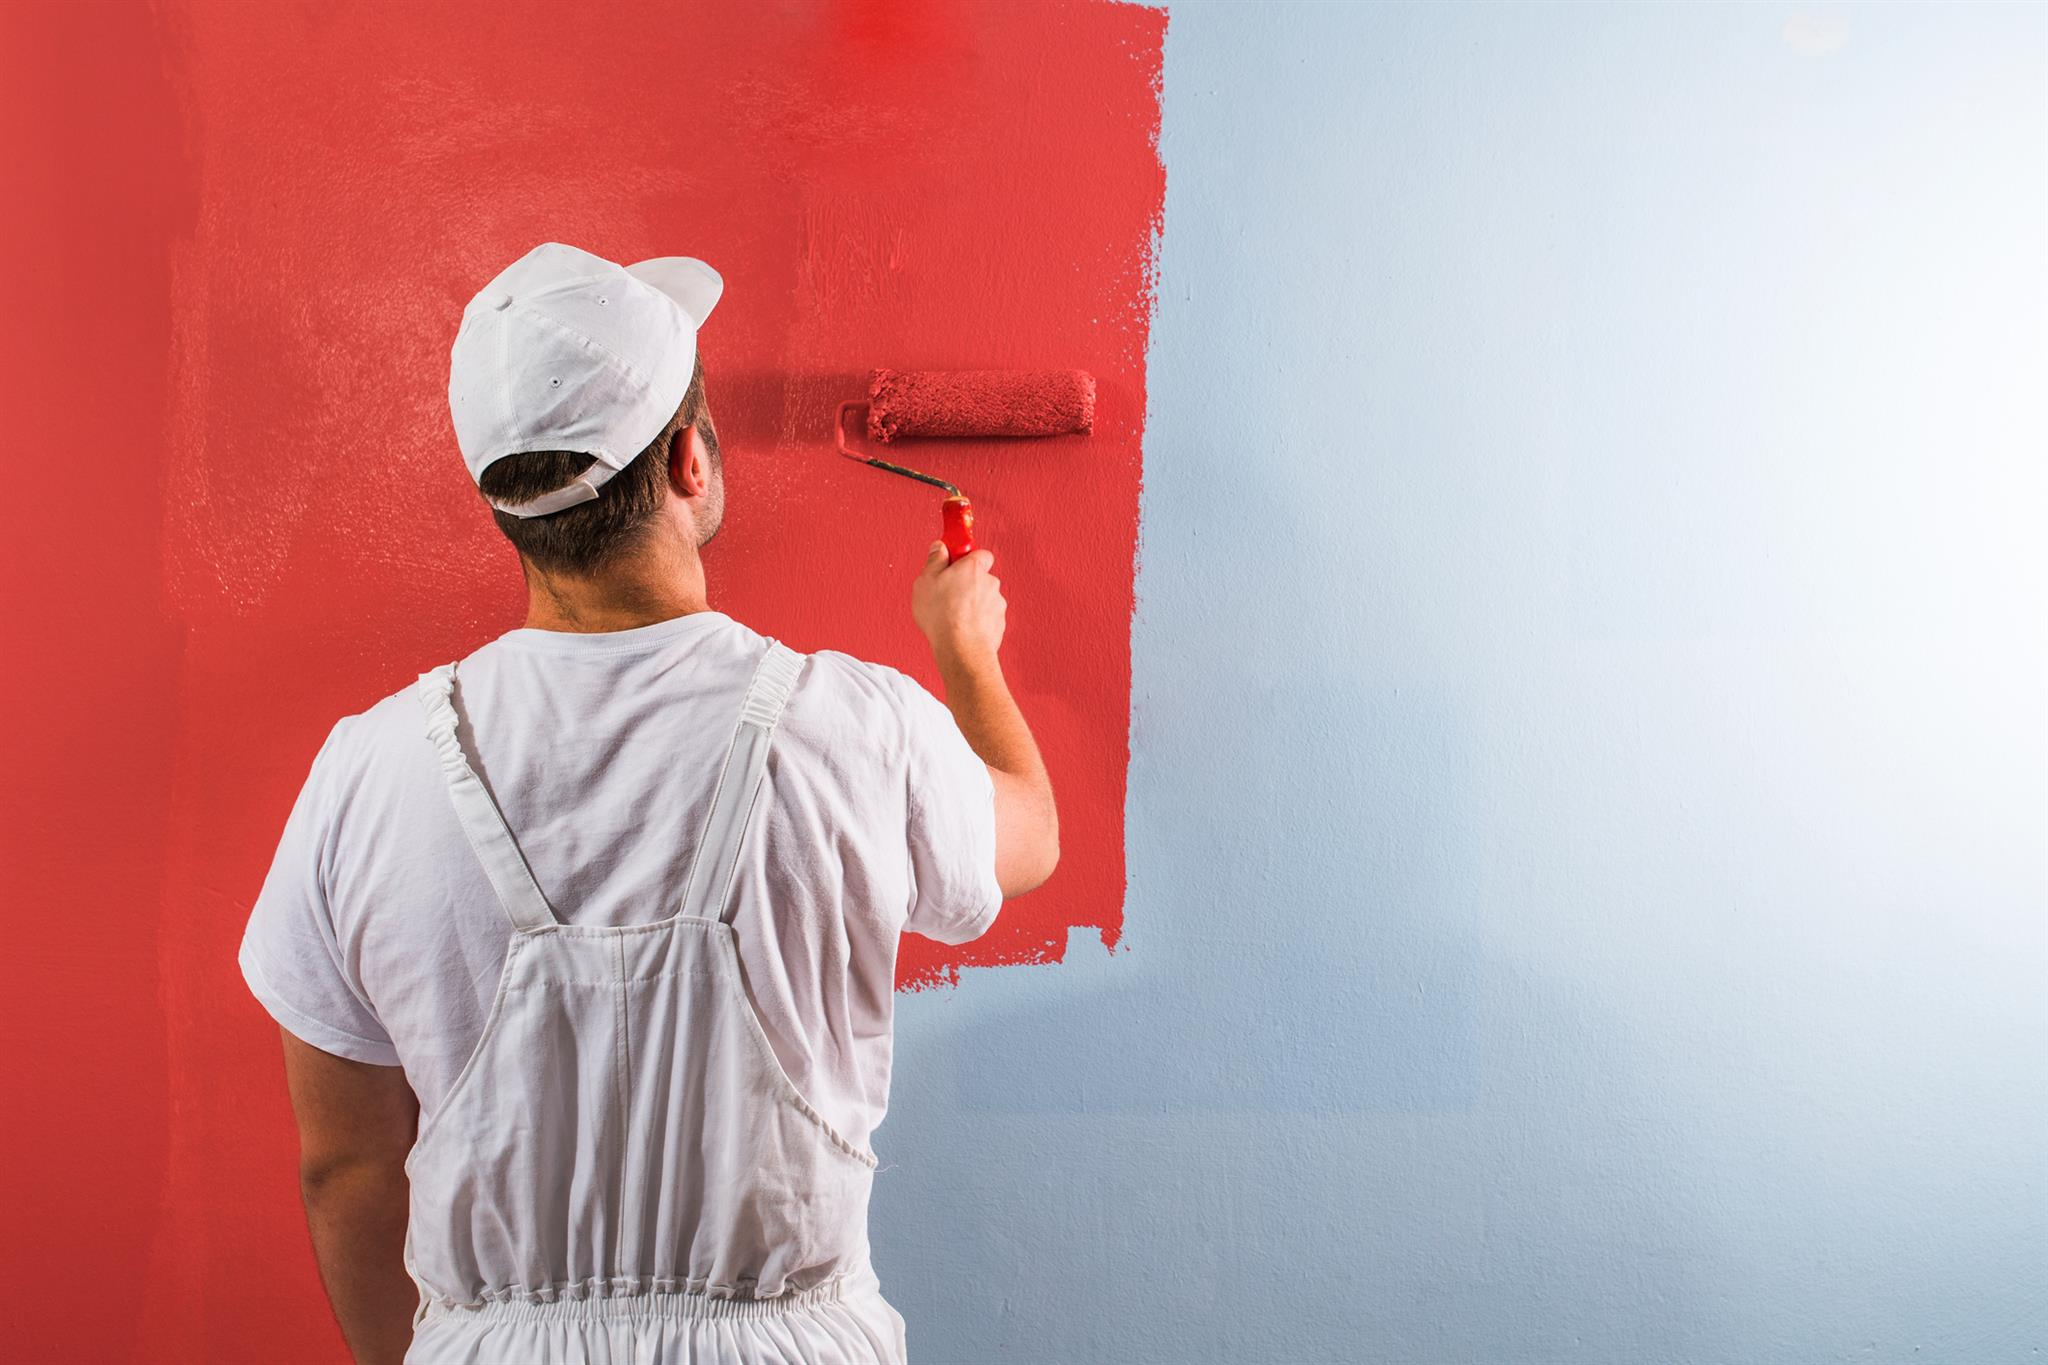 Essential information to check whilst acquiring the painting Adelaide service